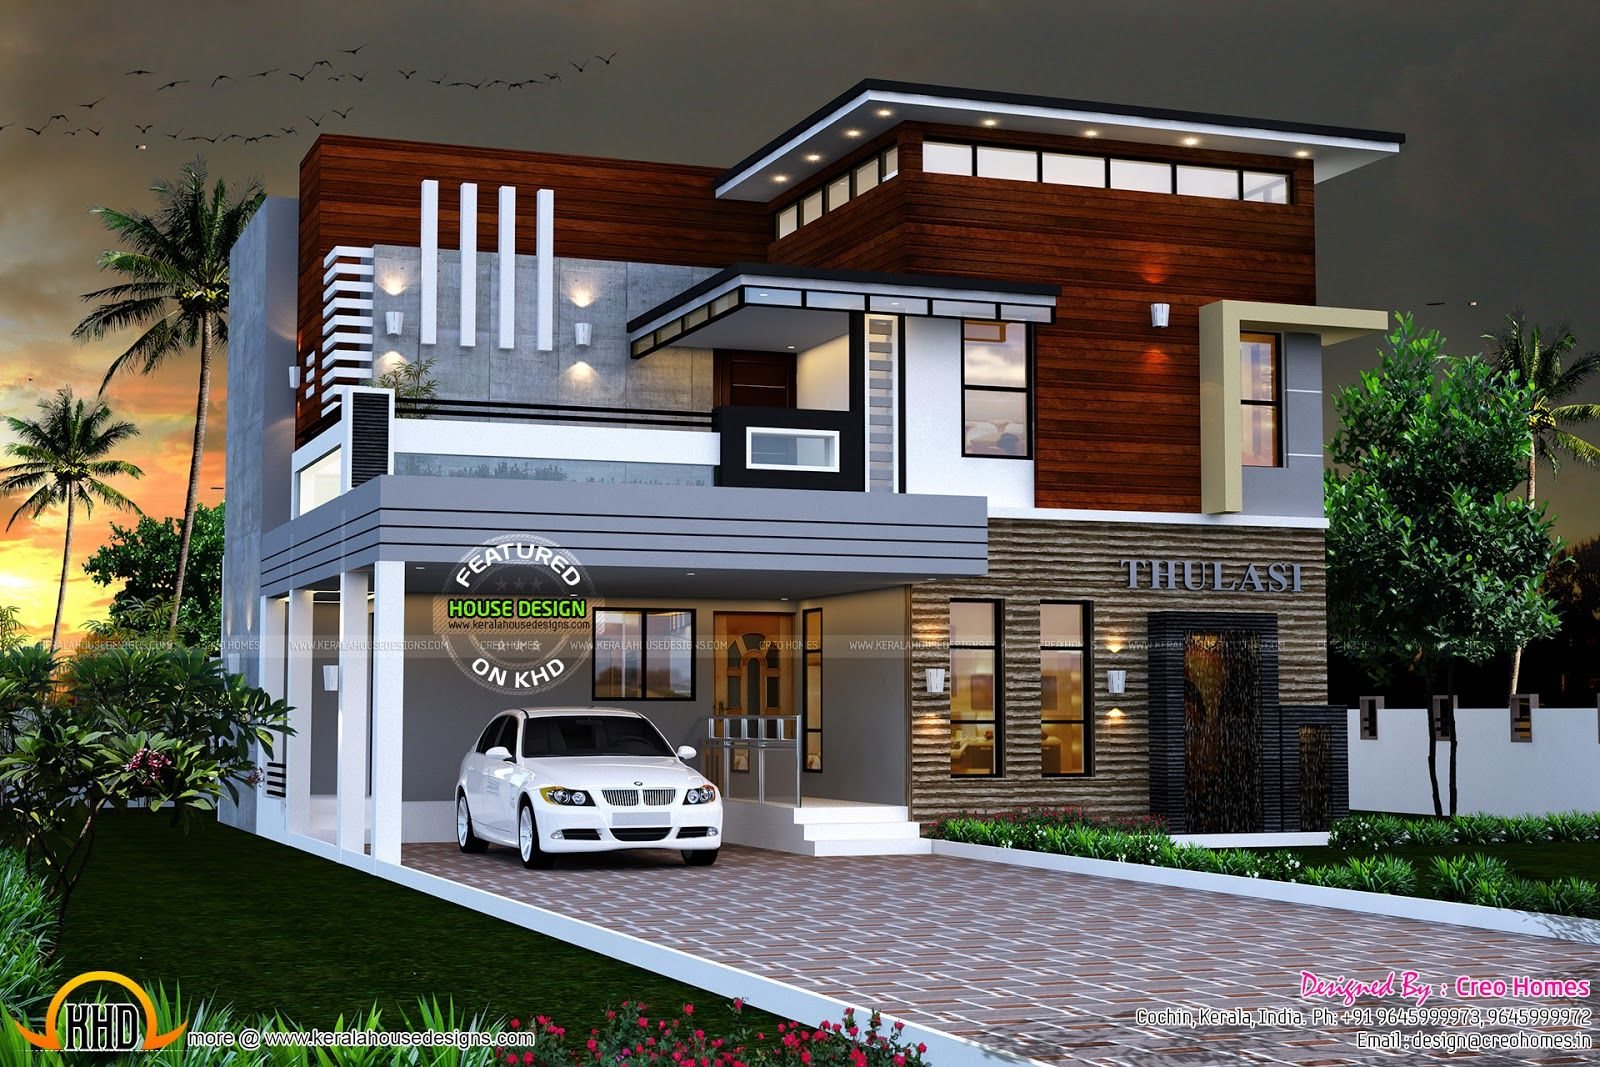 Eterior design modern small house architecture building for House design and construction